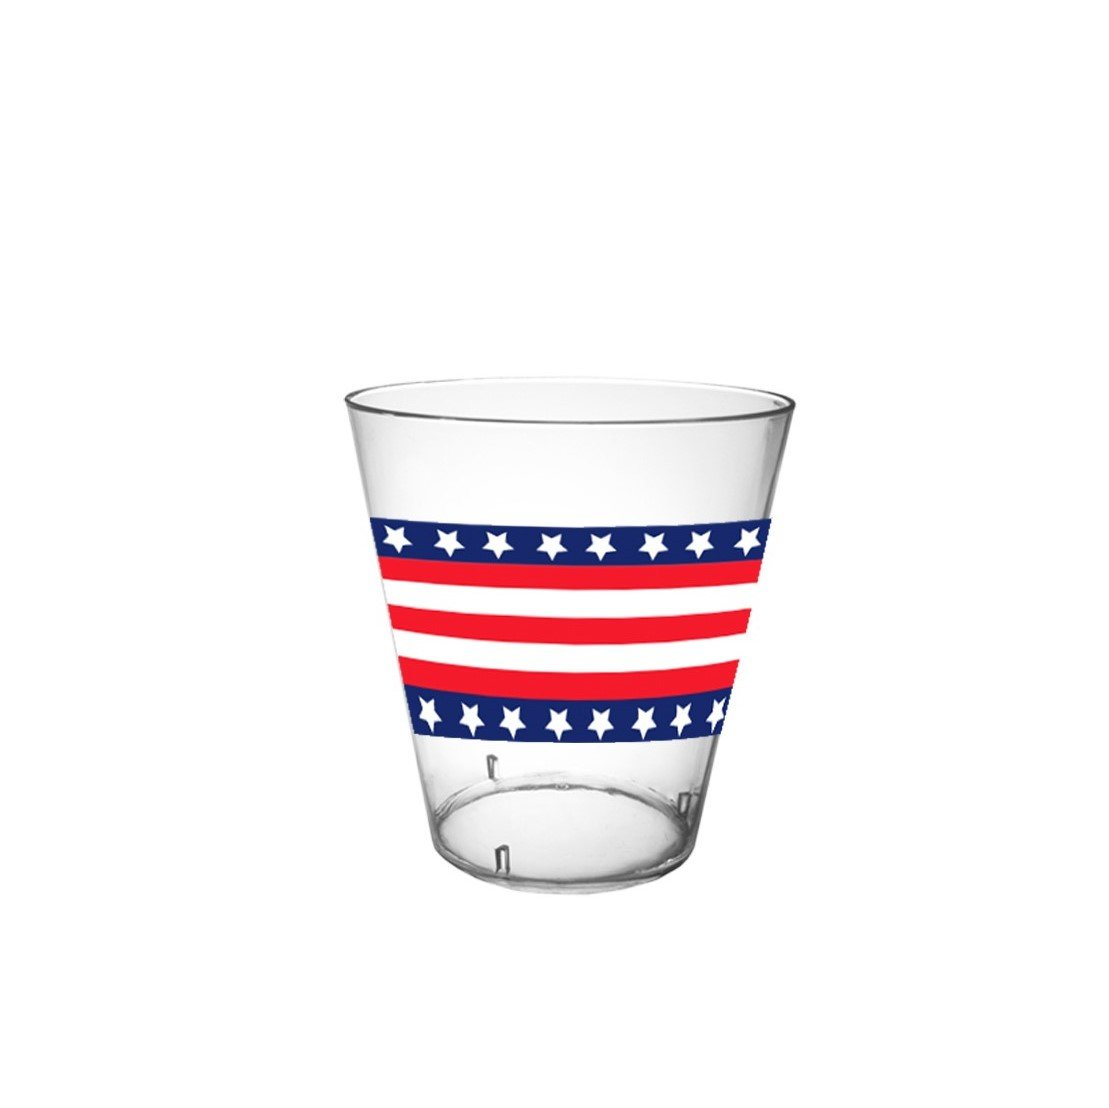 40-Count Printed Hard Plastic 2-Ounce Shot Glasses, Stars and Stripes by Party Essentials